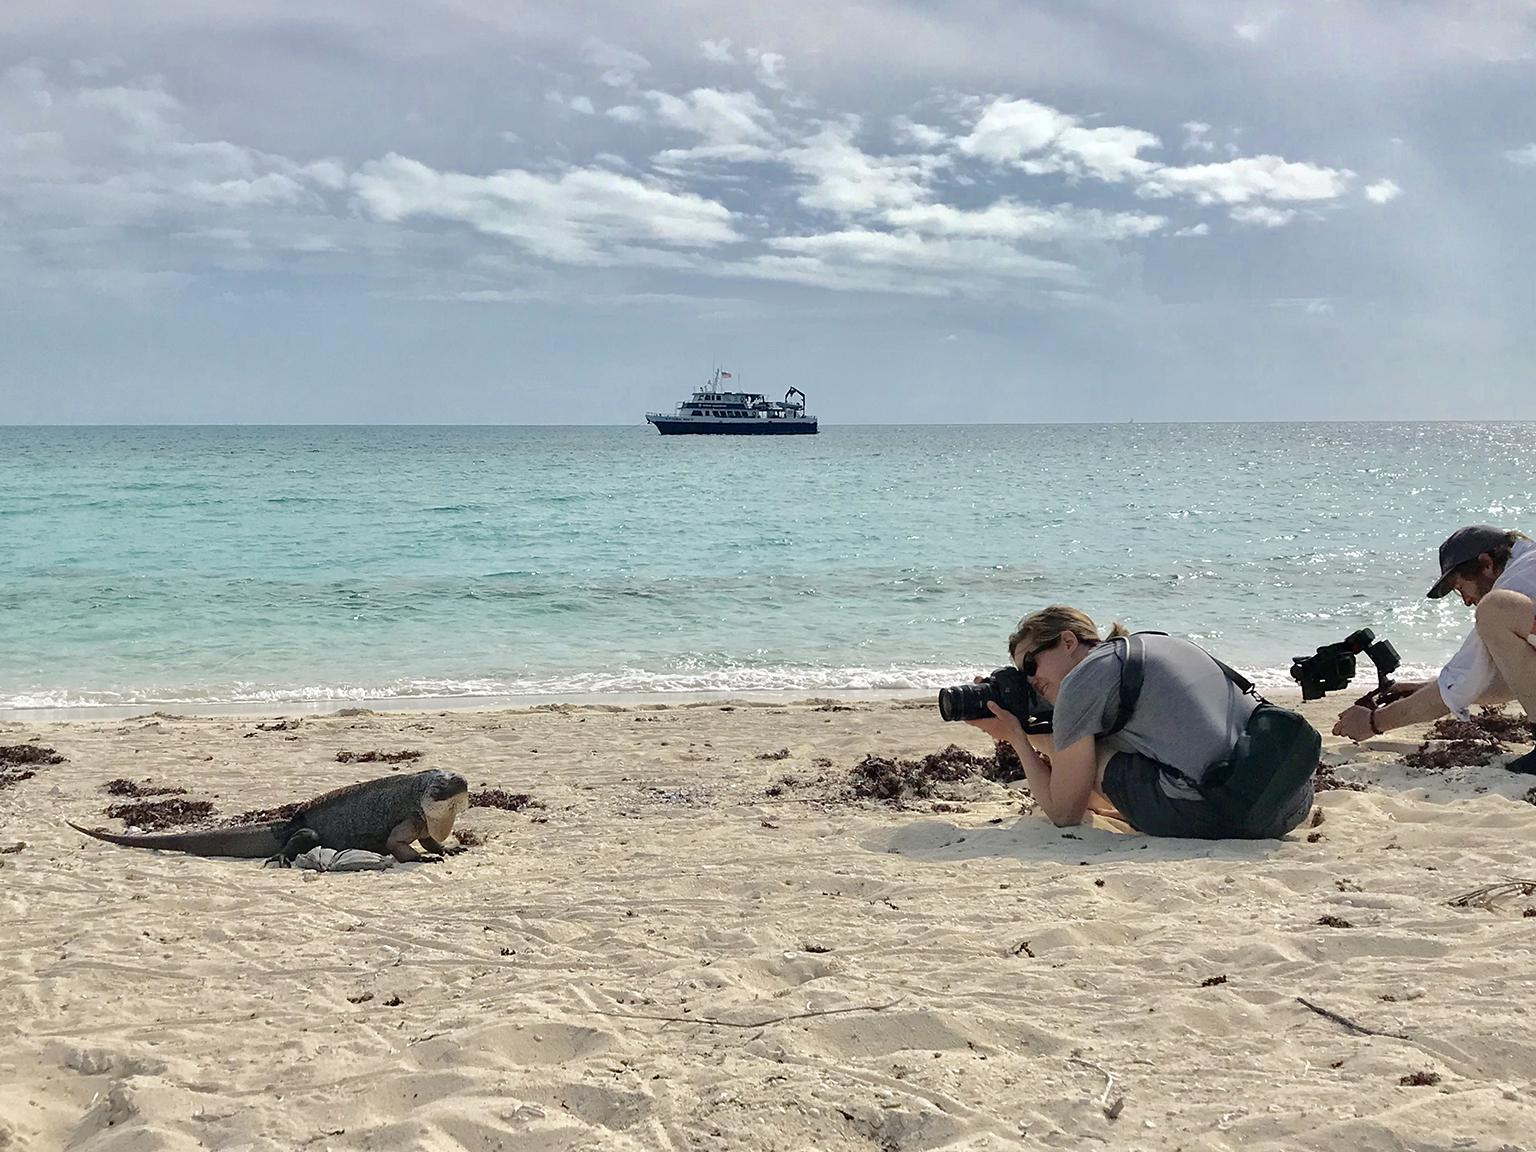 Shedd Aquarium's Brenna Hernandez photographs an iguana in the Bahamas. (Brenna Hernandez / Shedd Aquarium)